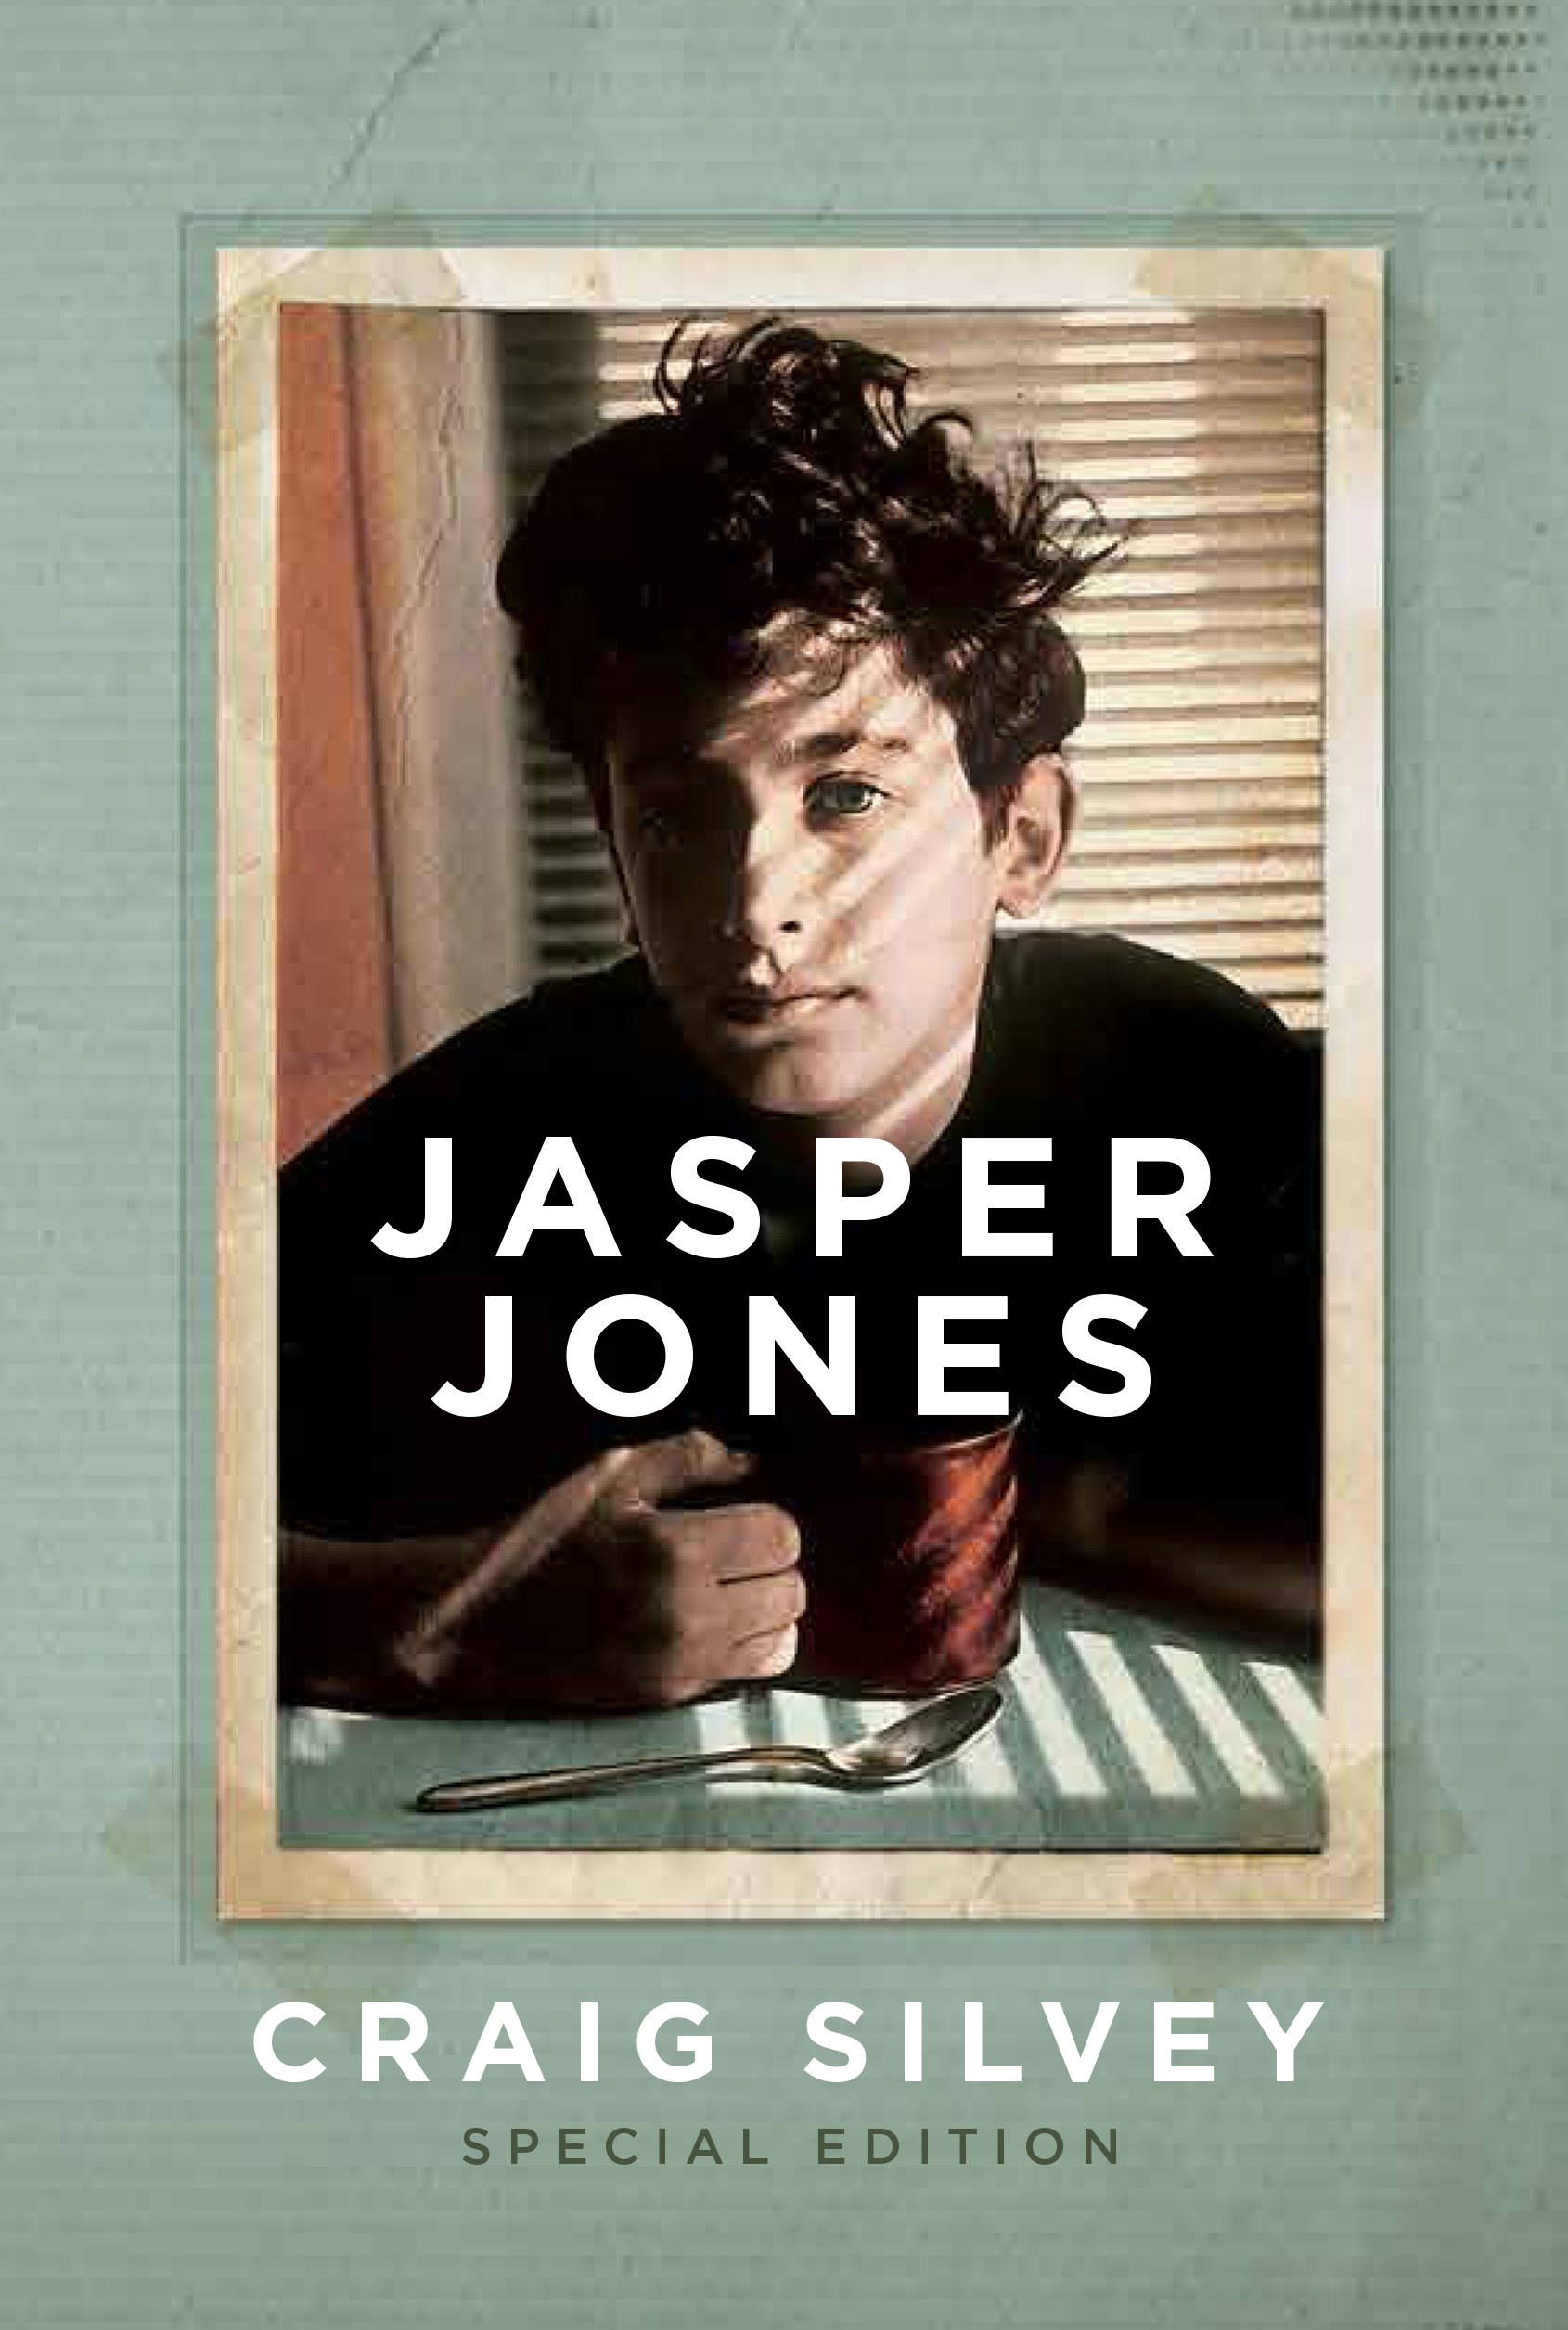 jasper jones 3 essay Level 3 english - free download as word doc (doc), pdf file (pdf), text file (txt) or read online for free.